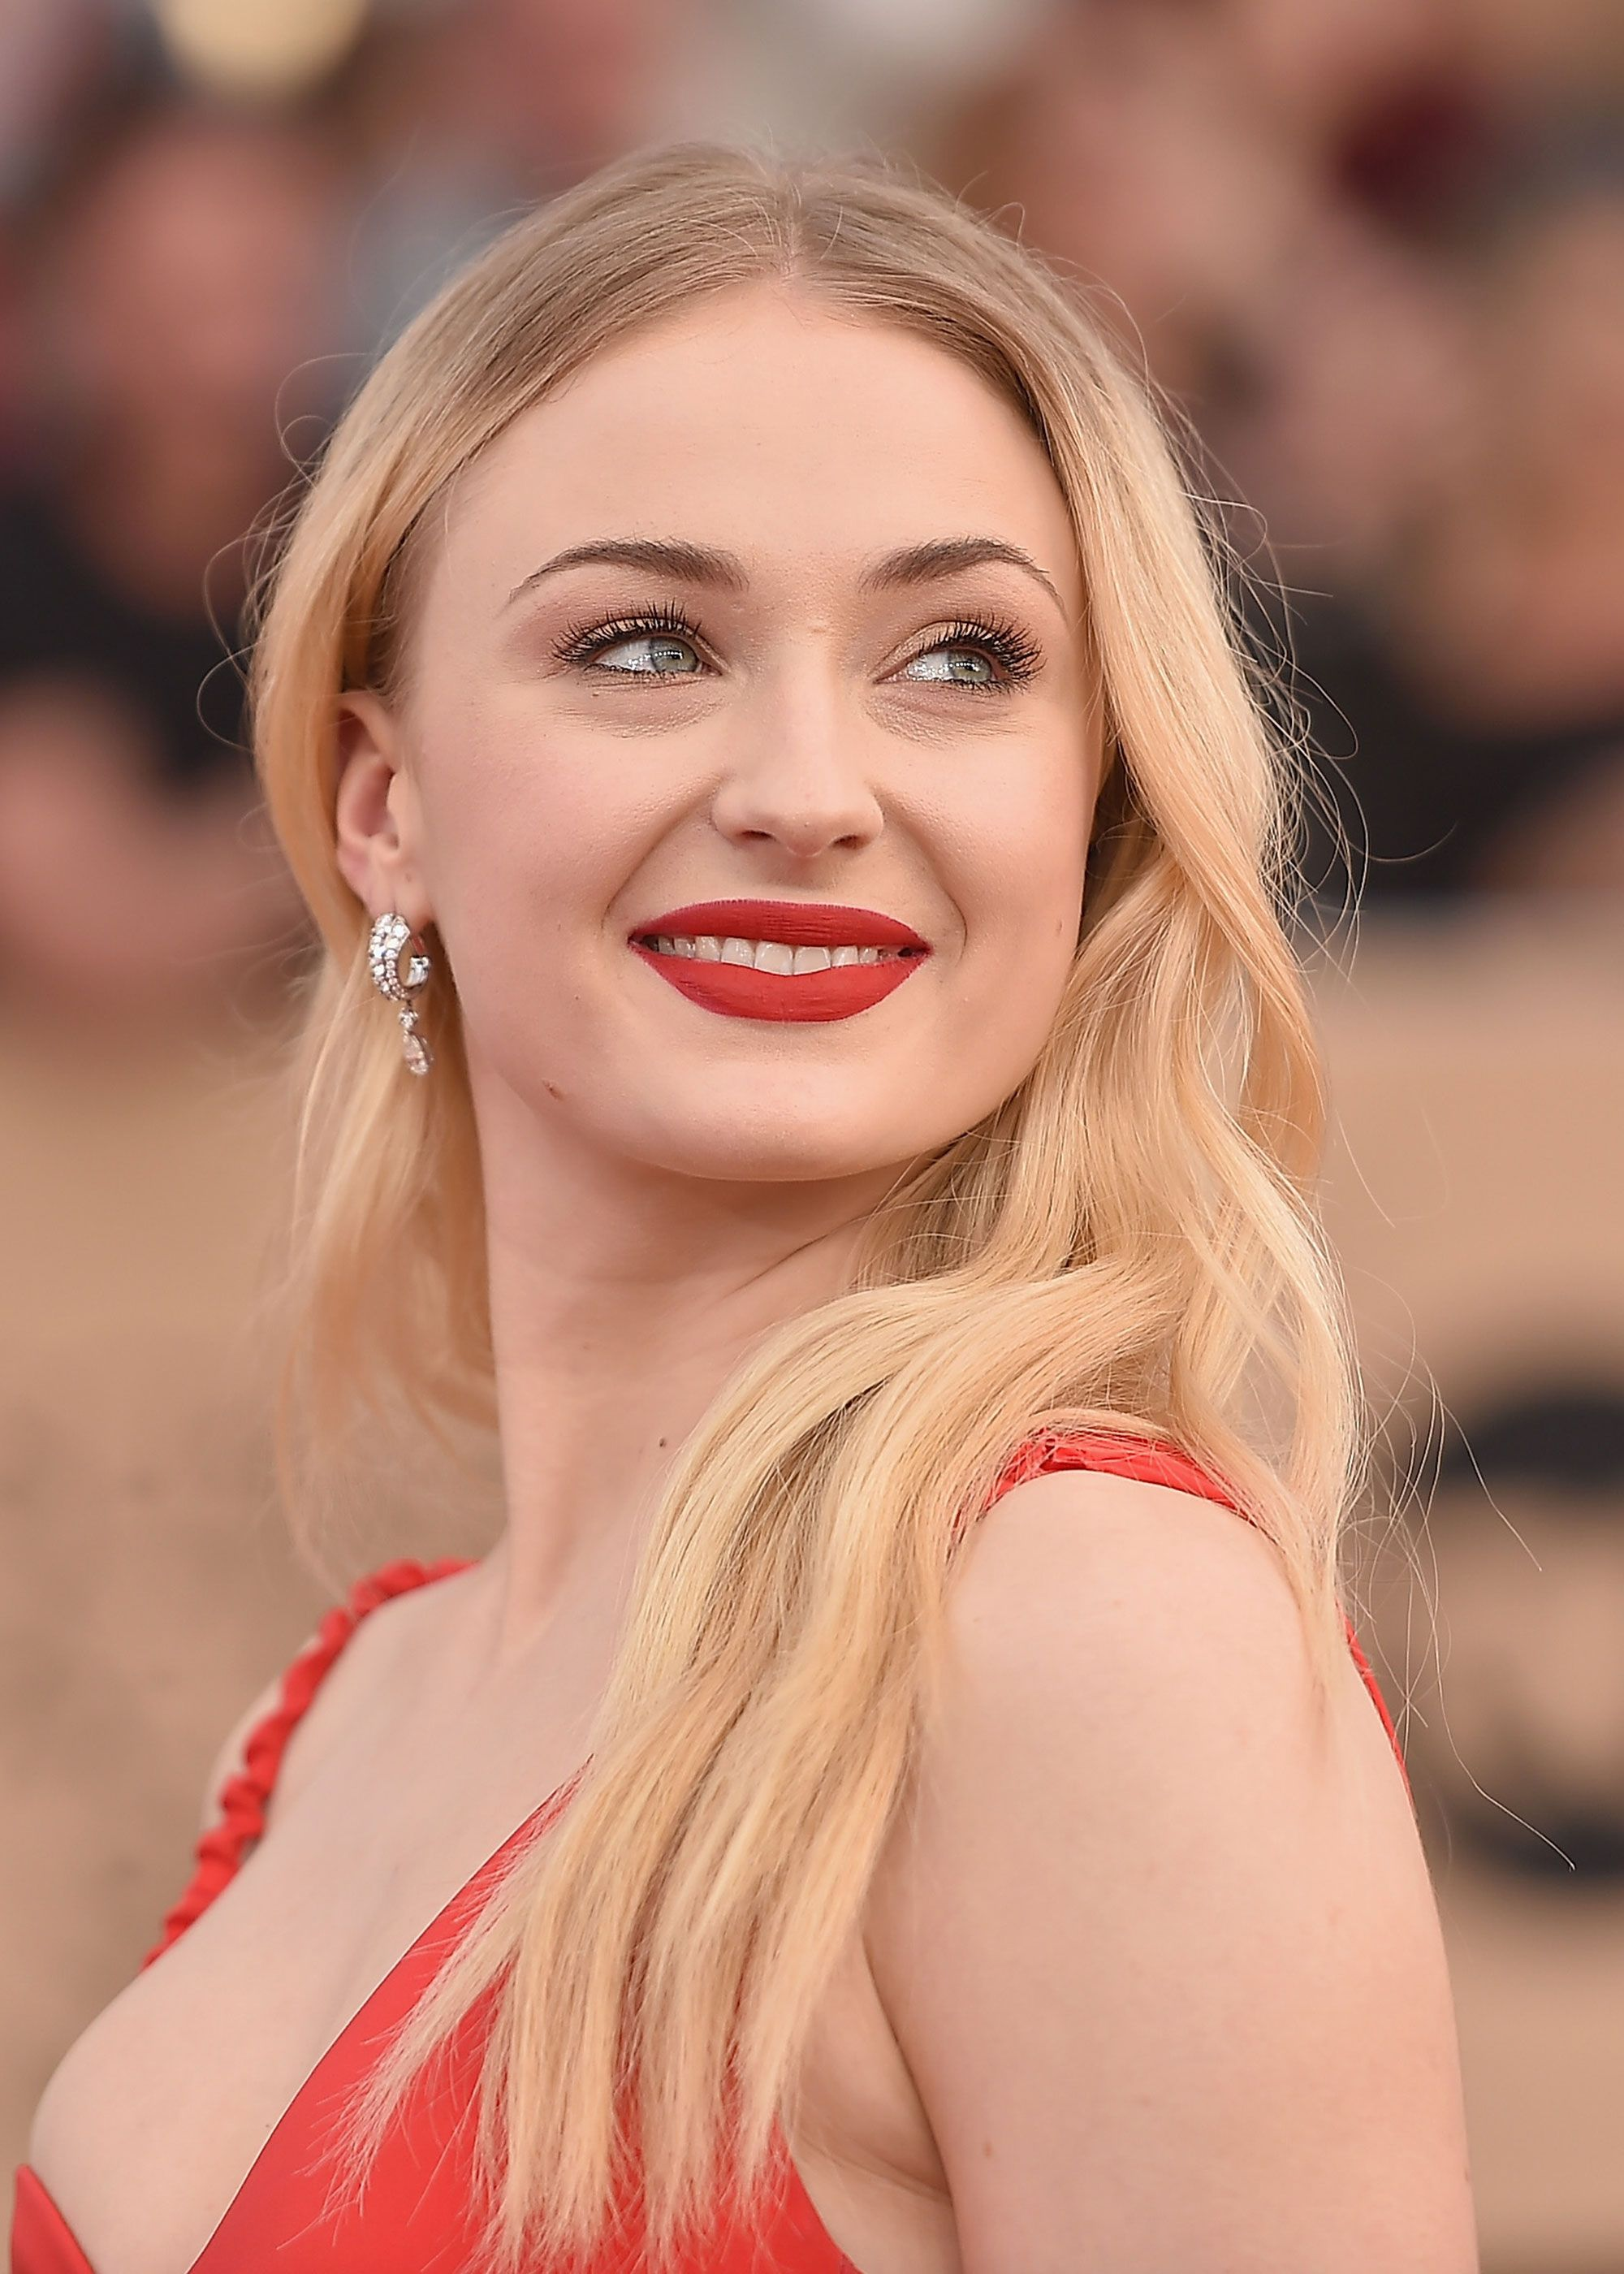 Sophie Turner On The Beauty Product She Describes As 'The Greatest Invention Of All'